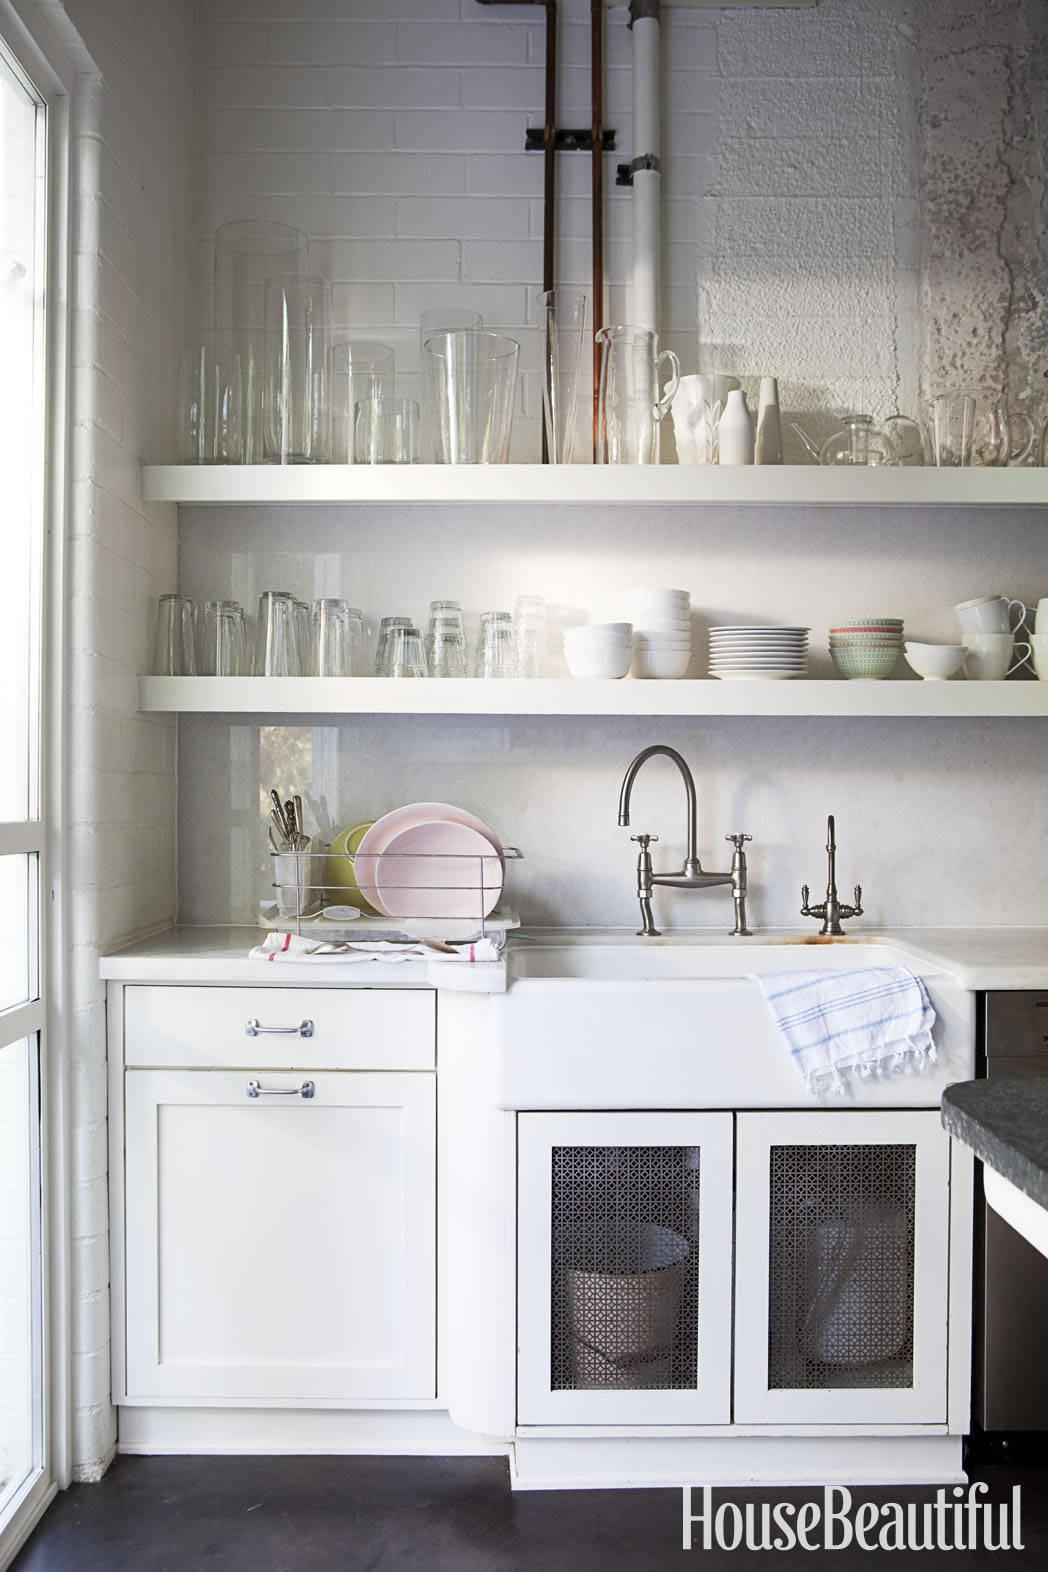 Using Open Shelving Kitchen Interior Collective